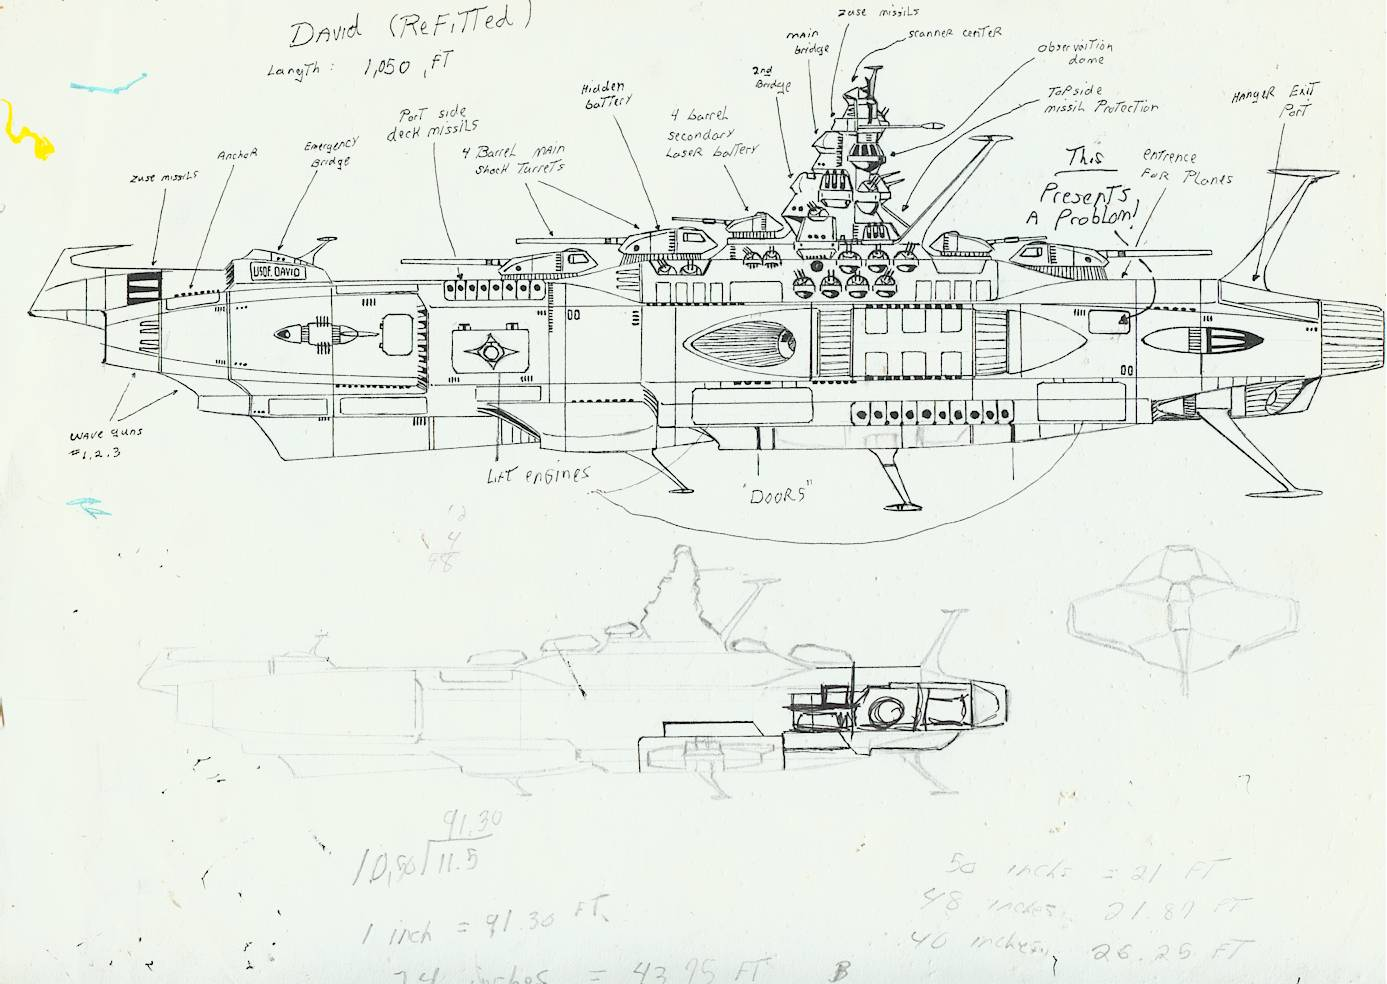 Artist Notes About The Original Ships